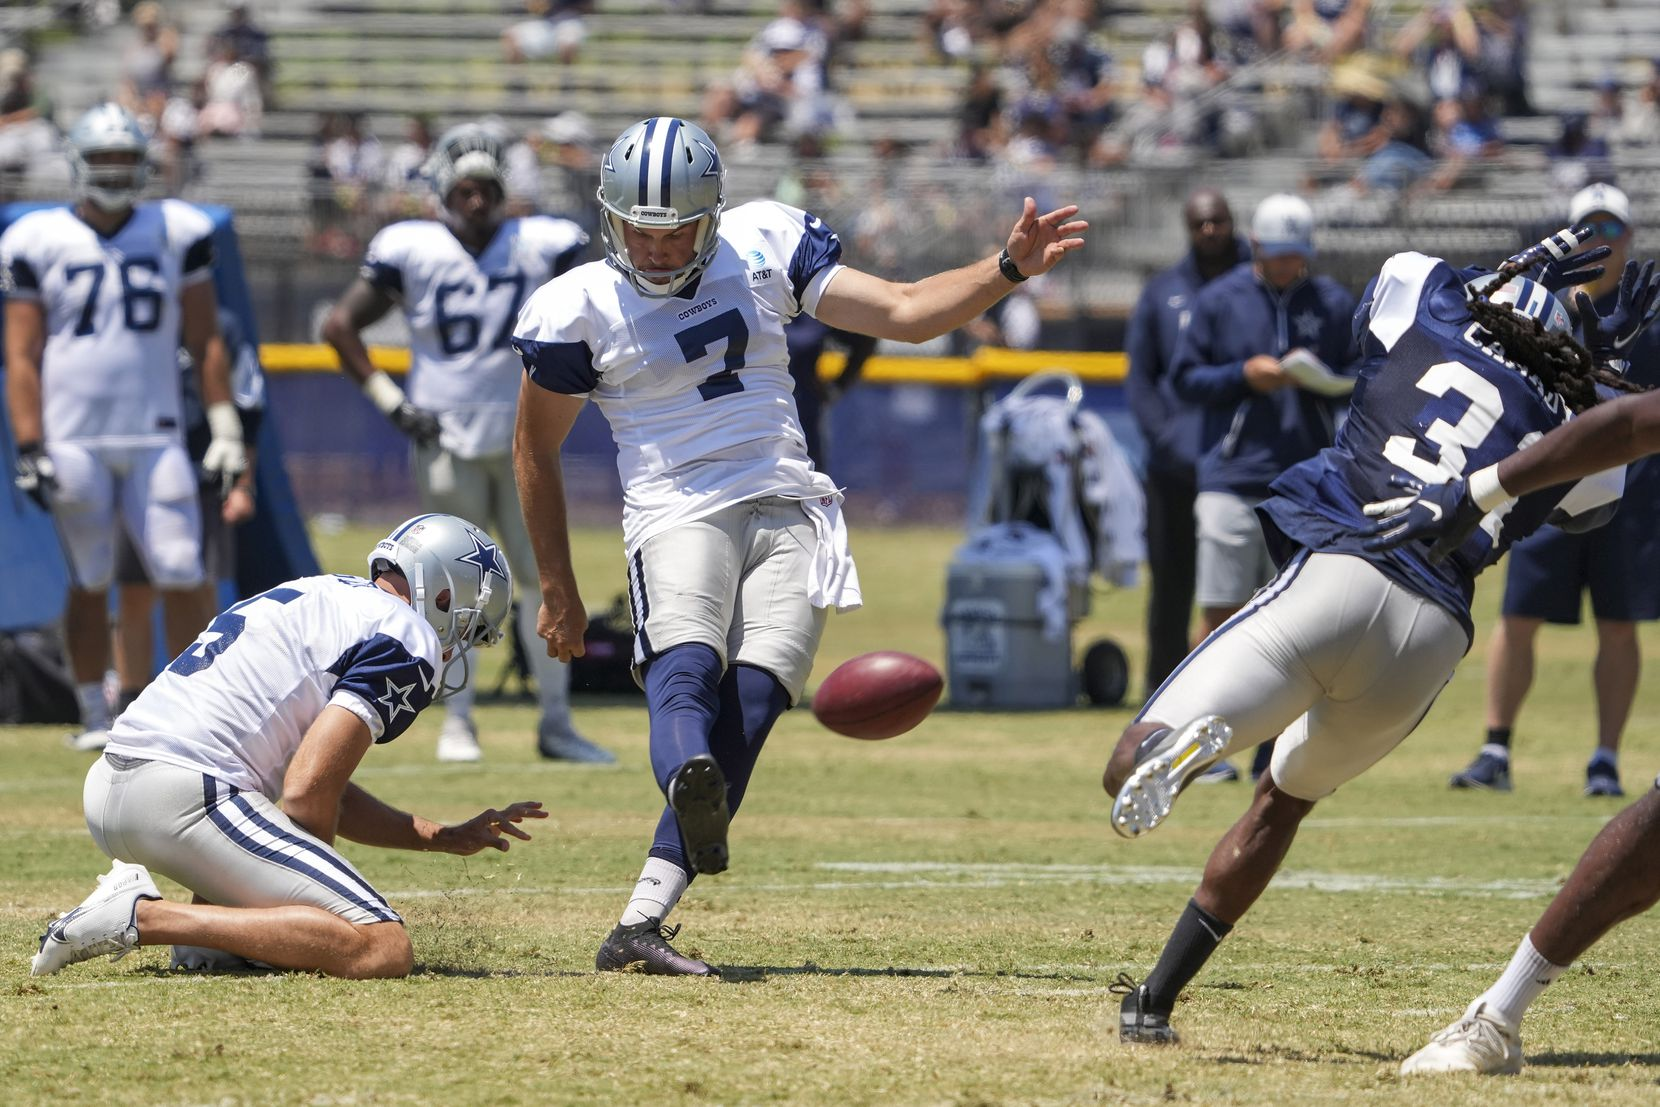 Dallas Cowboys punter Hunter Niswander (7) kicks a field goal from the hold of punter Bryan Anger (5) during a practice at training camp on Thursday, July 29, 2021, in Oxnard, Calif. (Smiley N. Pool/The Dallas Morning News)